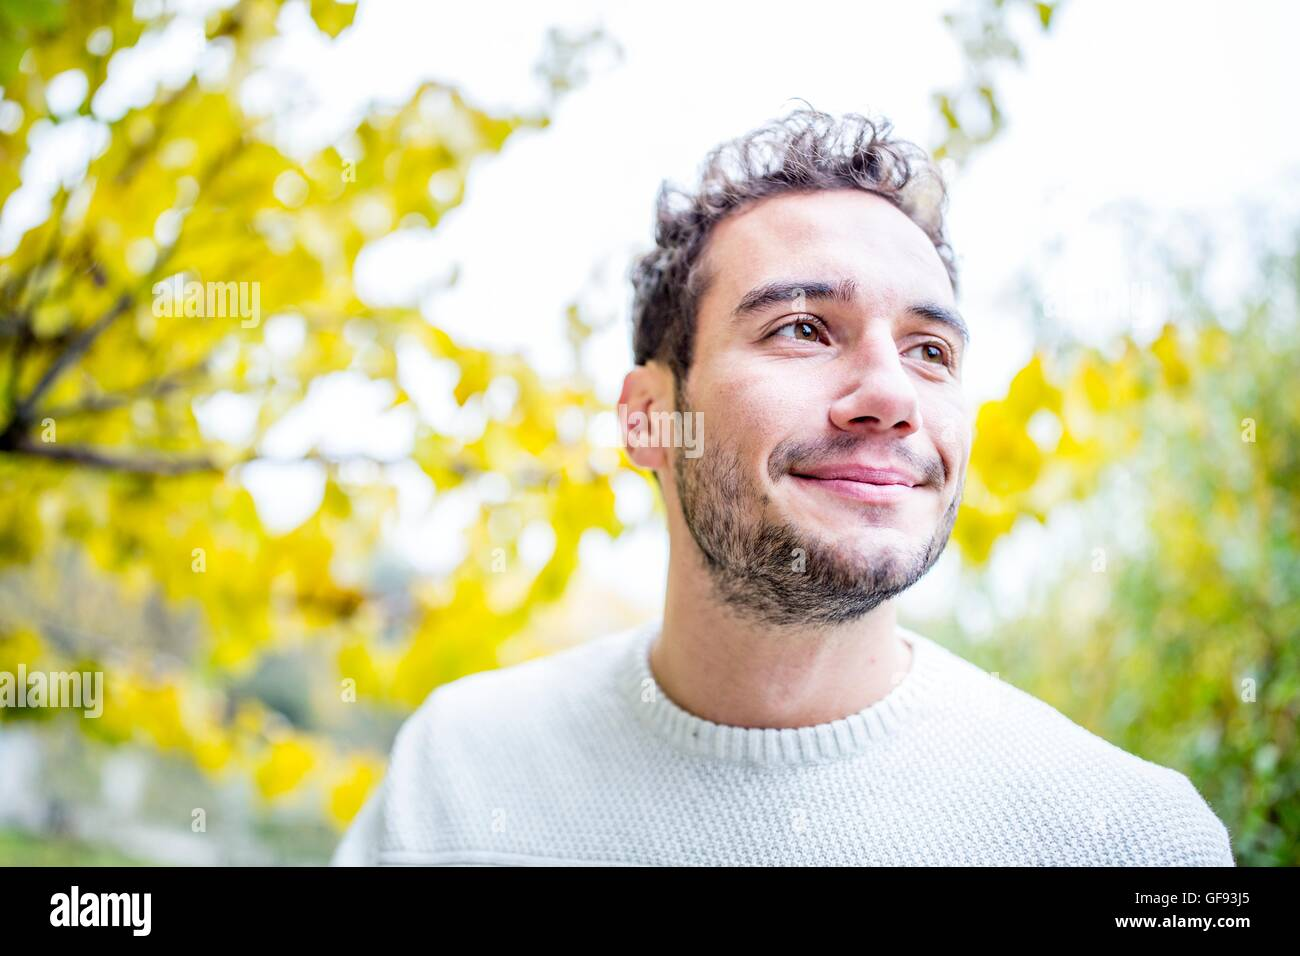 MODEL RELEASED. Young man looking away and smiling, close-up. - Stock Image